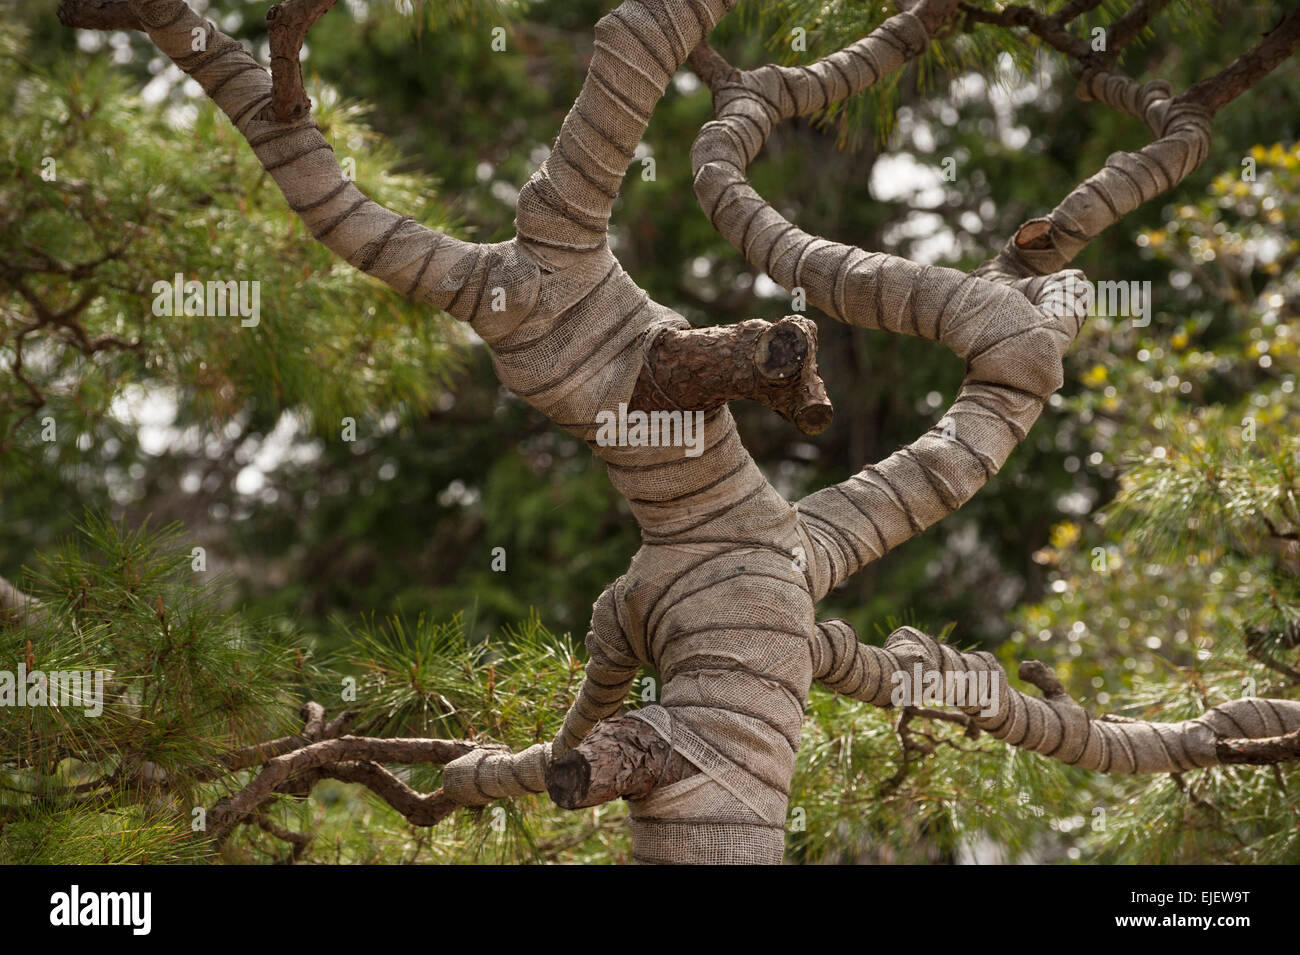 A carefully wrapped and sculpted pine tree in a Japanese garden ...